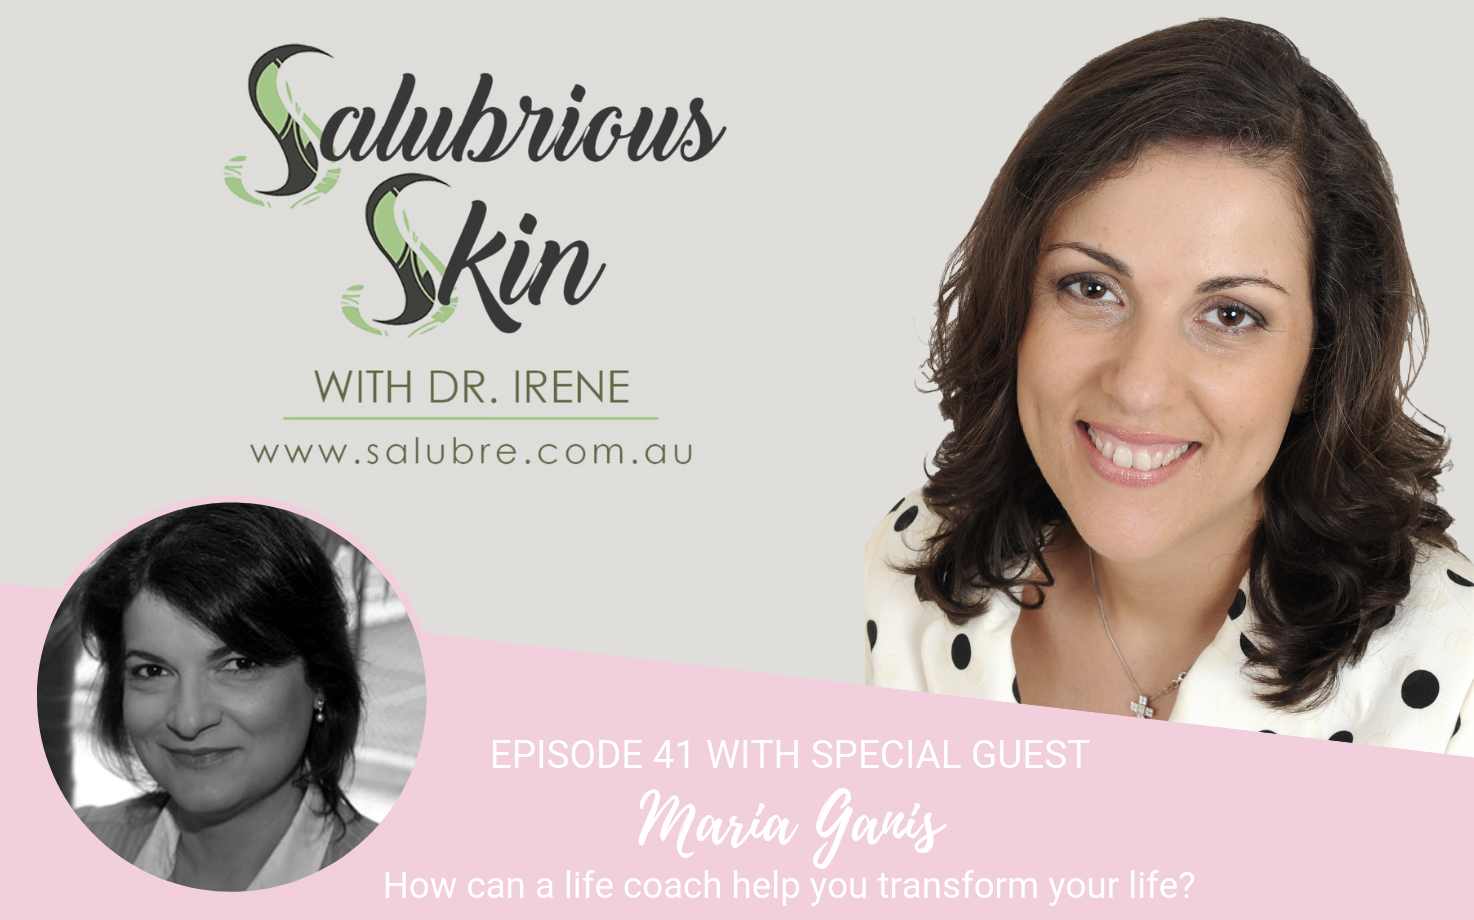 Podcast 41: How can a life coach help you transform your life?